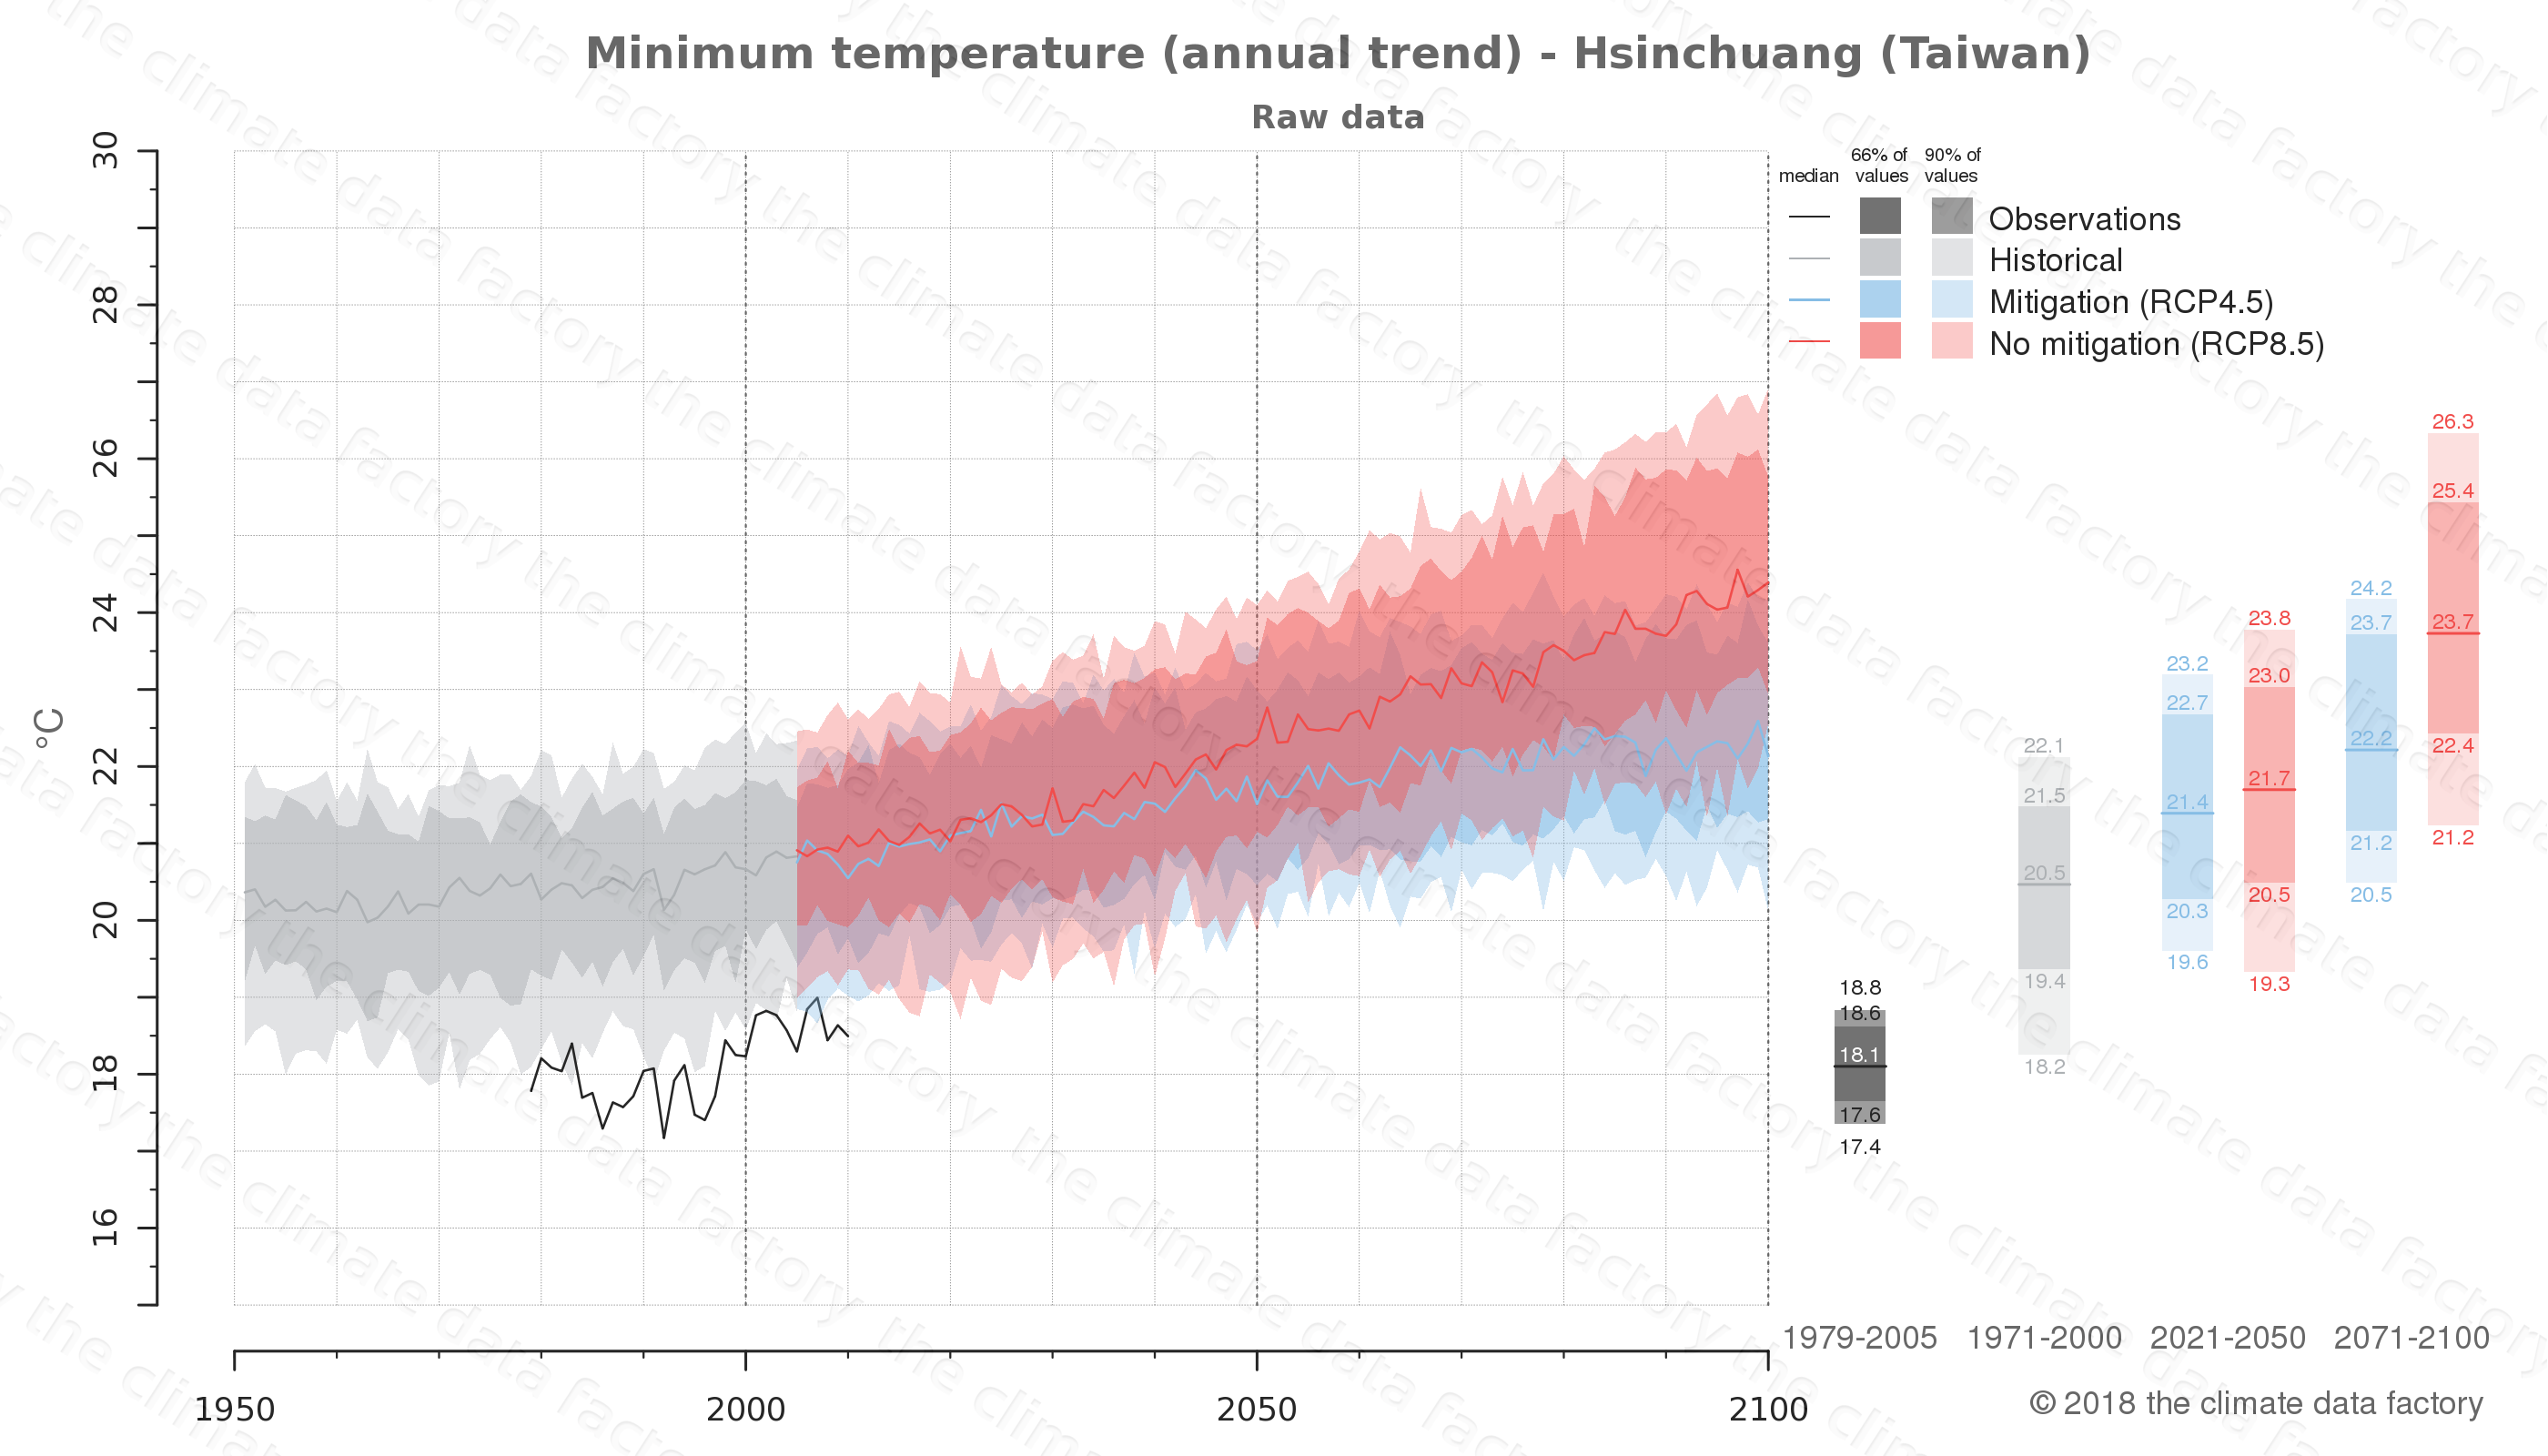 climate change data policy adaptation climate graph city data minimum-temperature hsinchuang taiwan